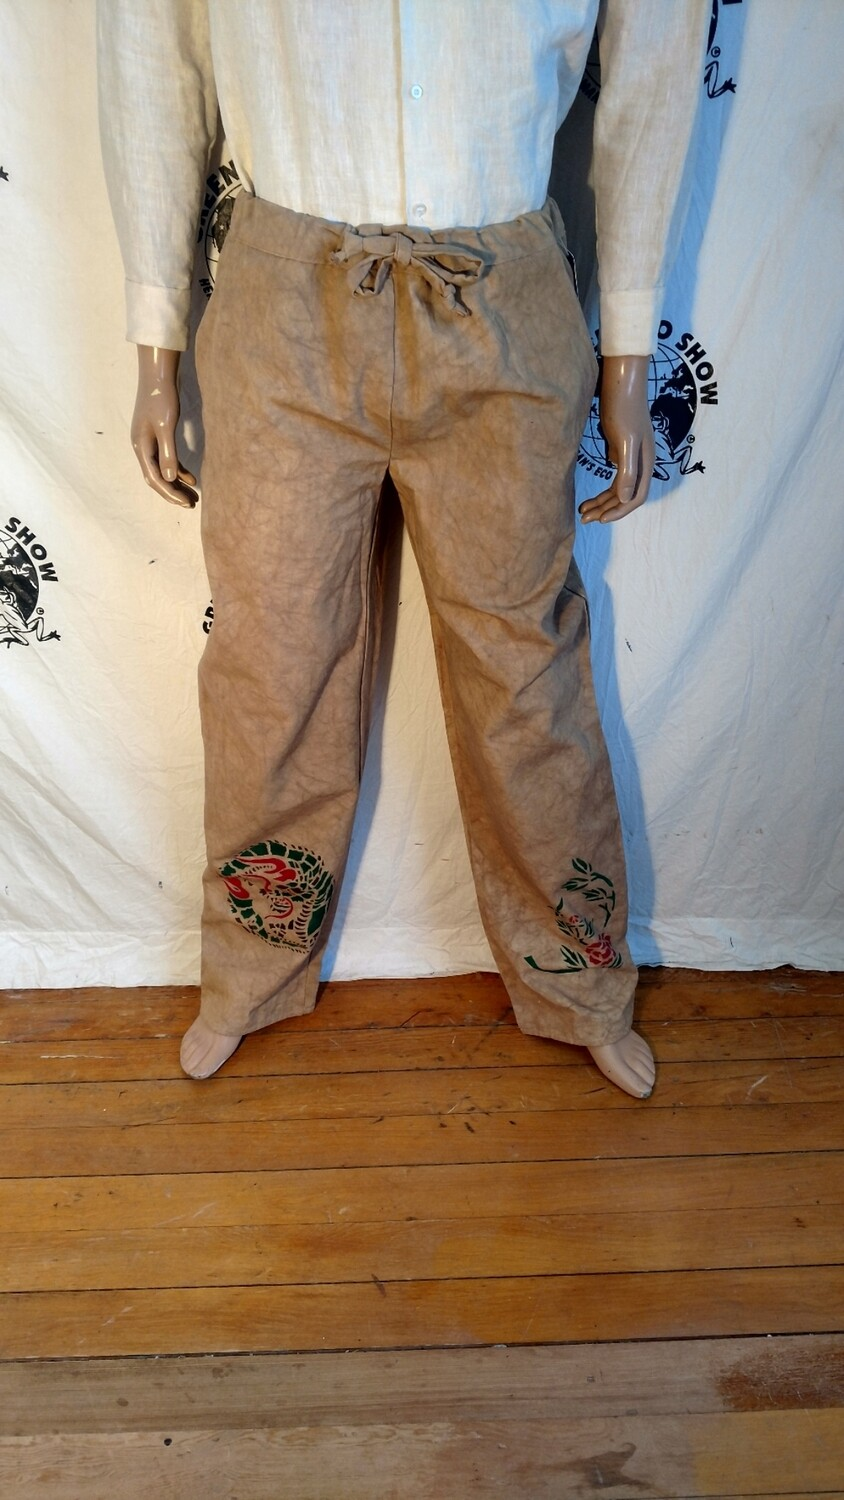 Hermans Eco Organic cotton drawstring pants L made in USA